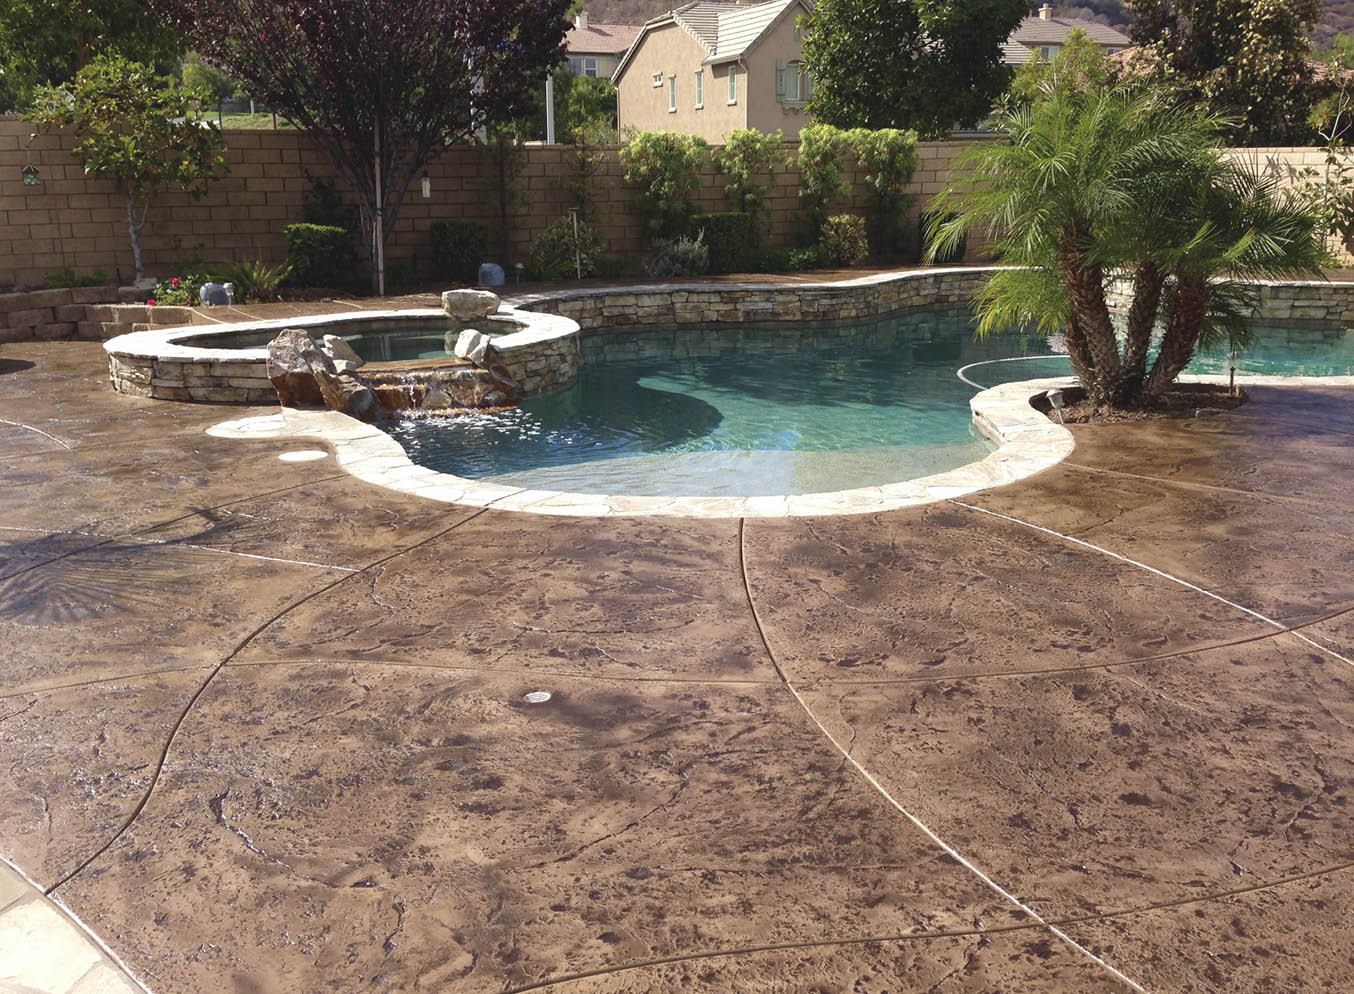 Pool with stamped and stained concrete deck and a hot tub spilling water over a water fall.